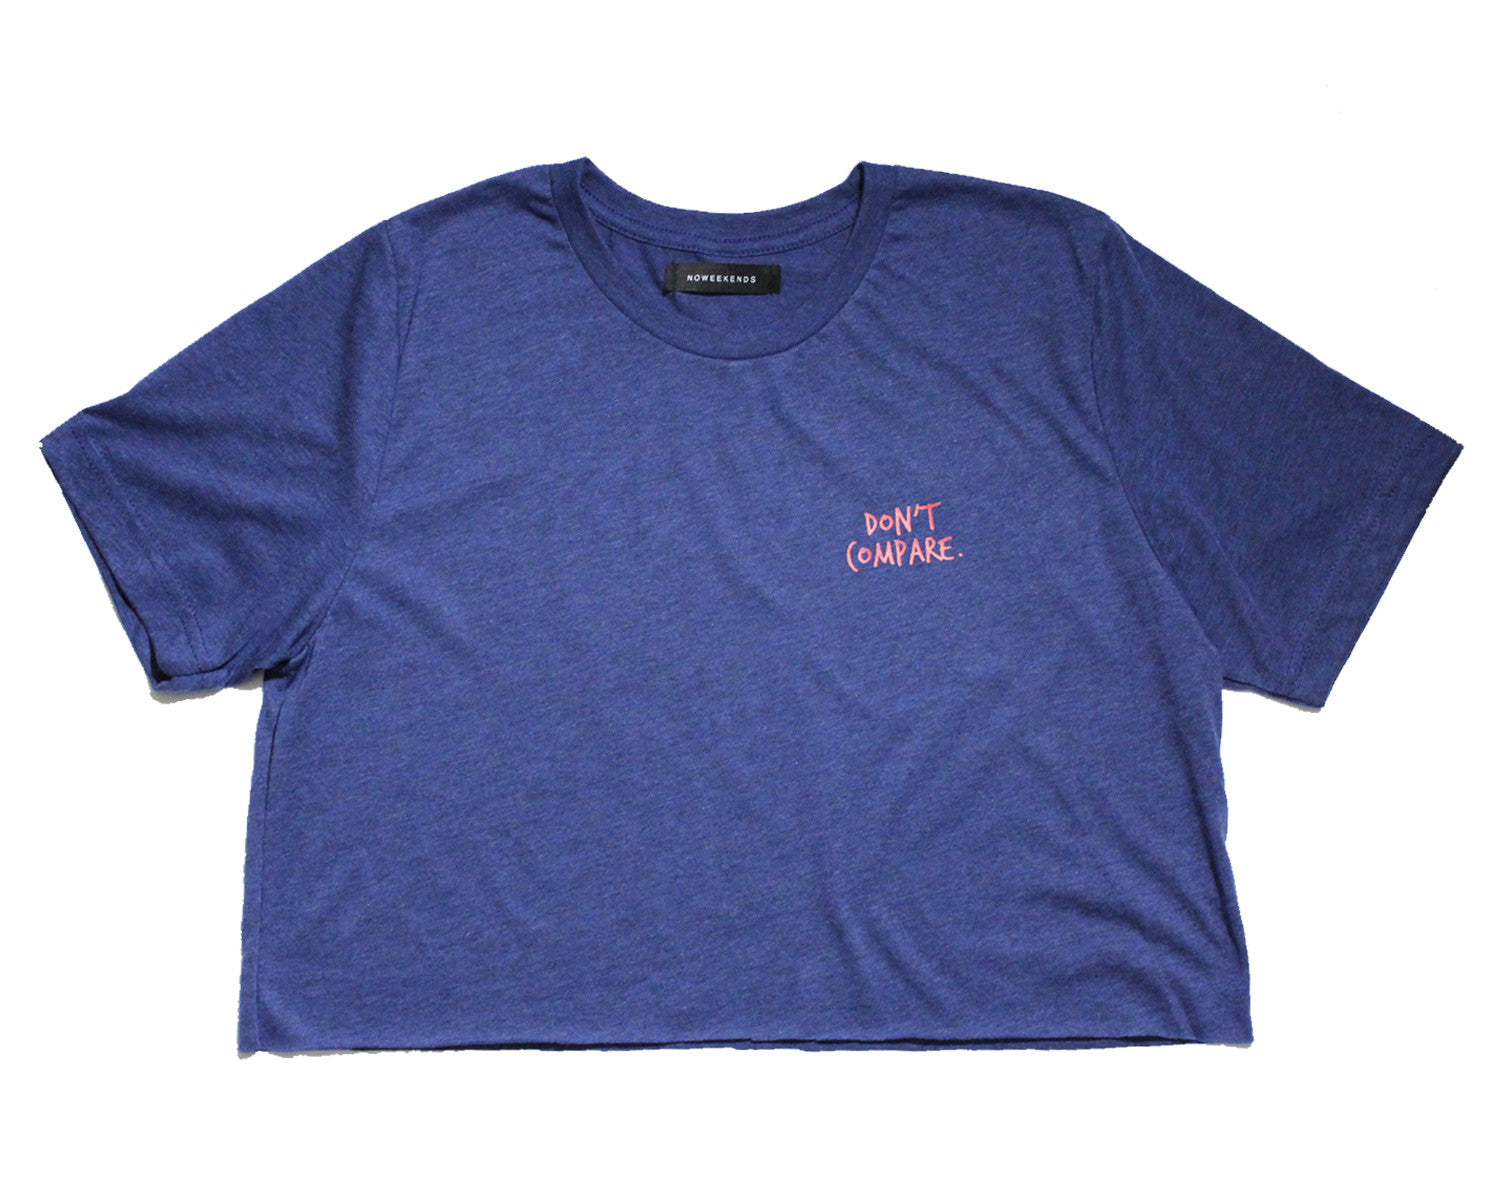 Don't compare tee (navy)